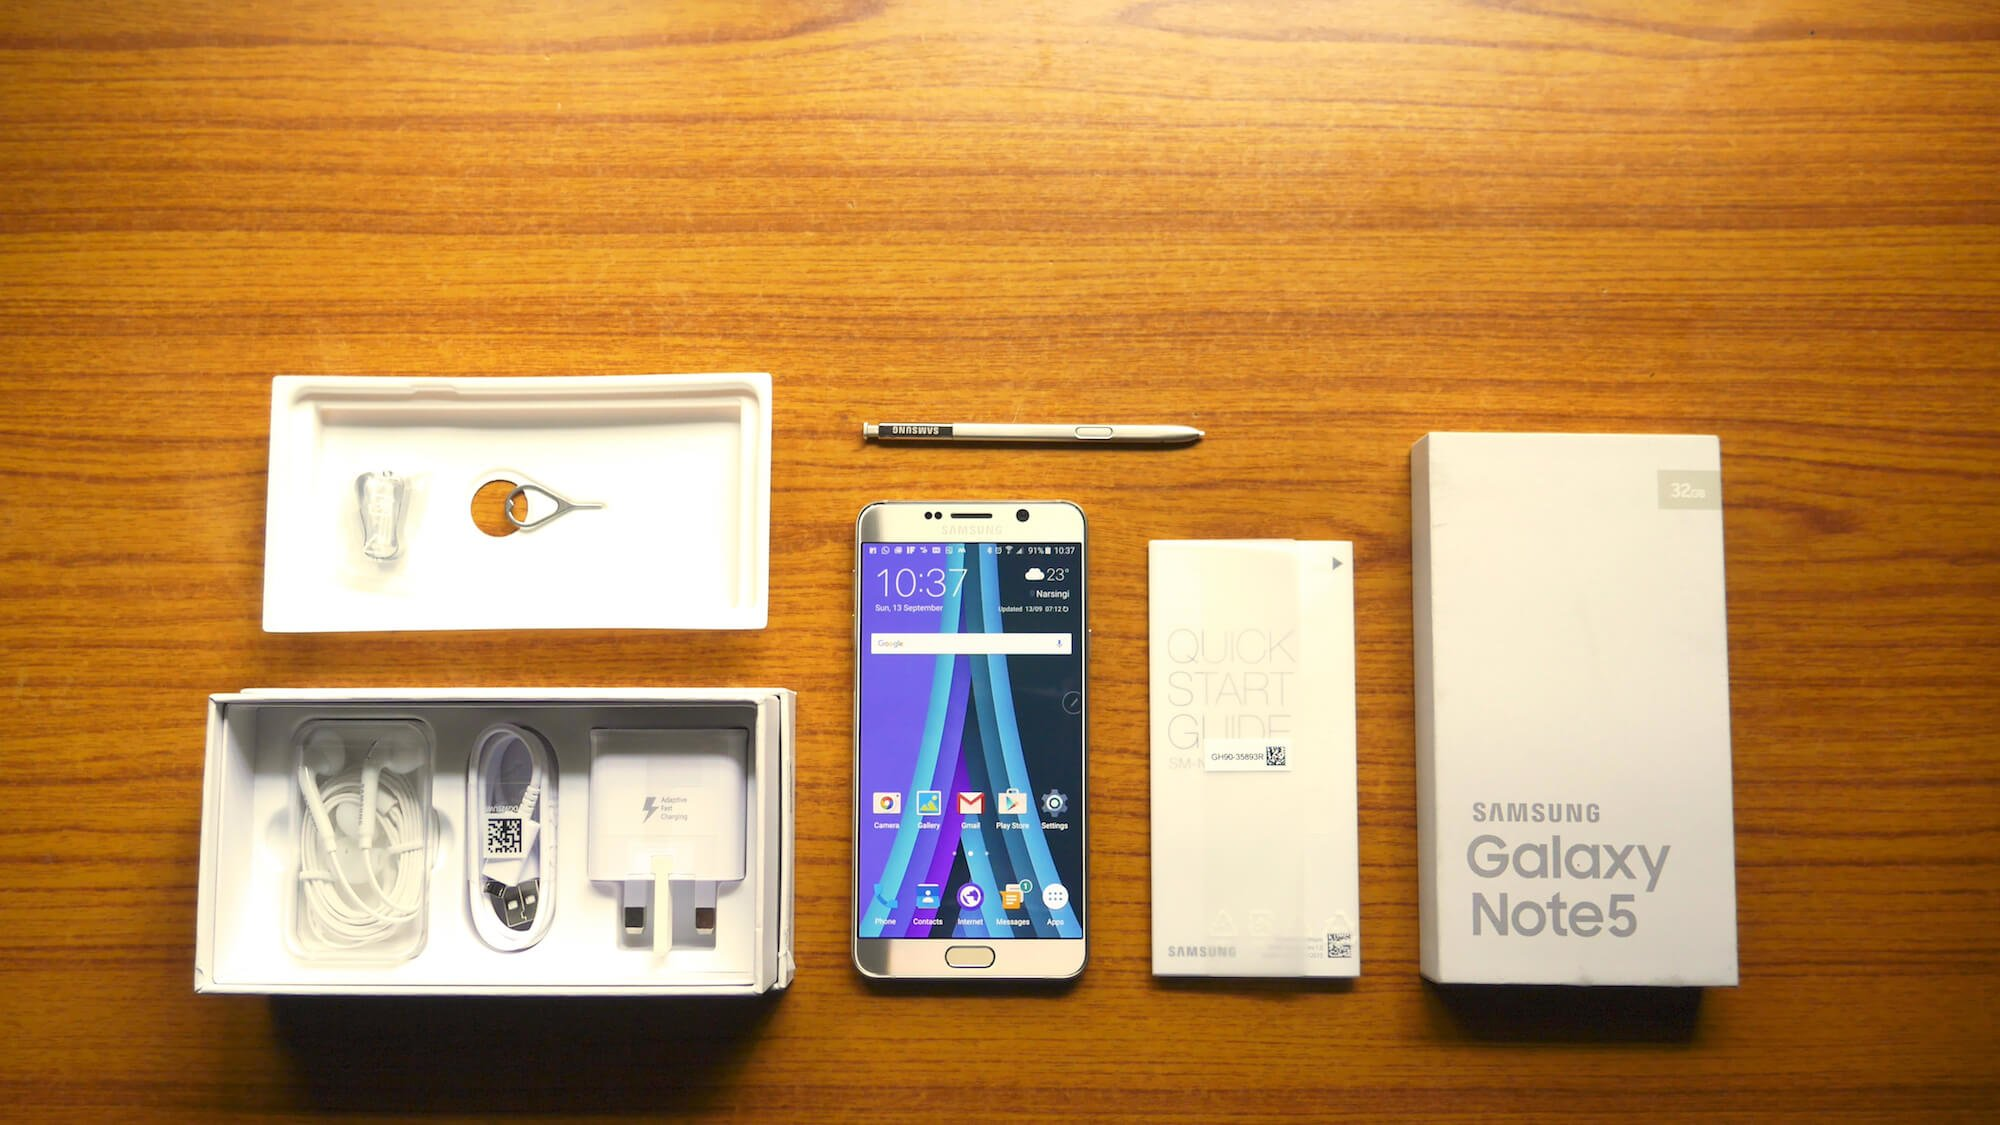 Samsung Galaxy Note 5 Unboxing Package Contents